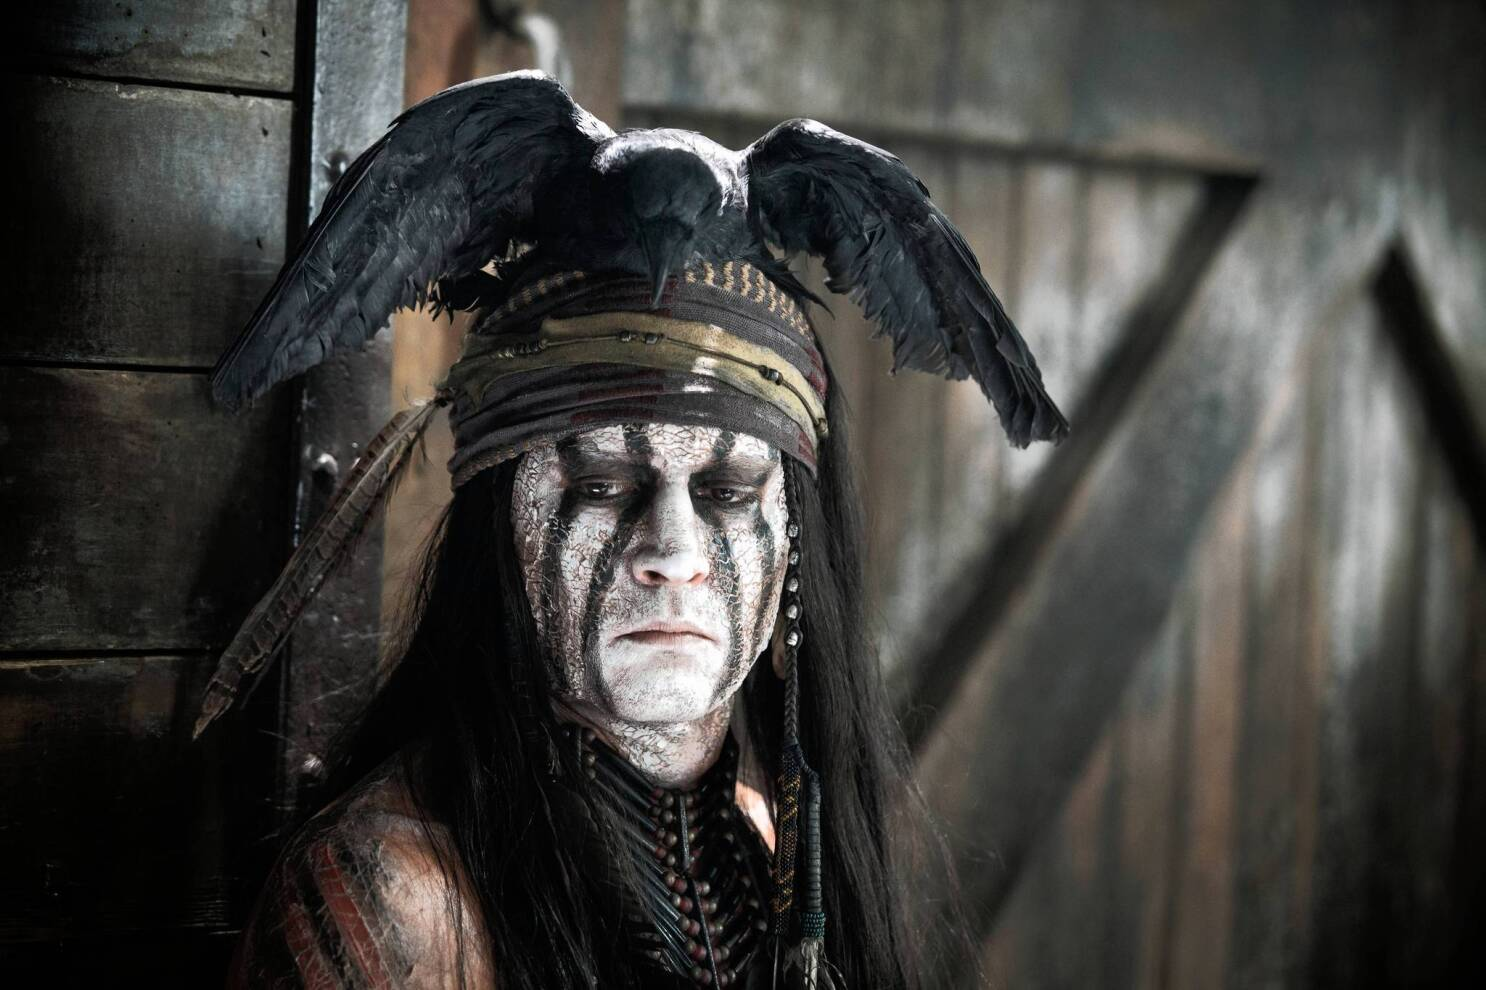 The Lone Ranger': Johnny Depp's Tonto proves divisive - Los Angeles Times